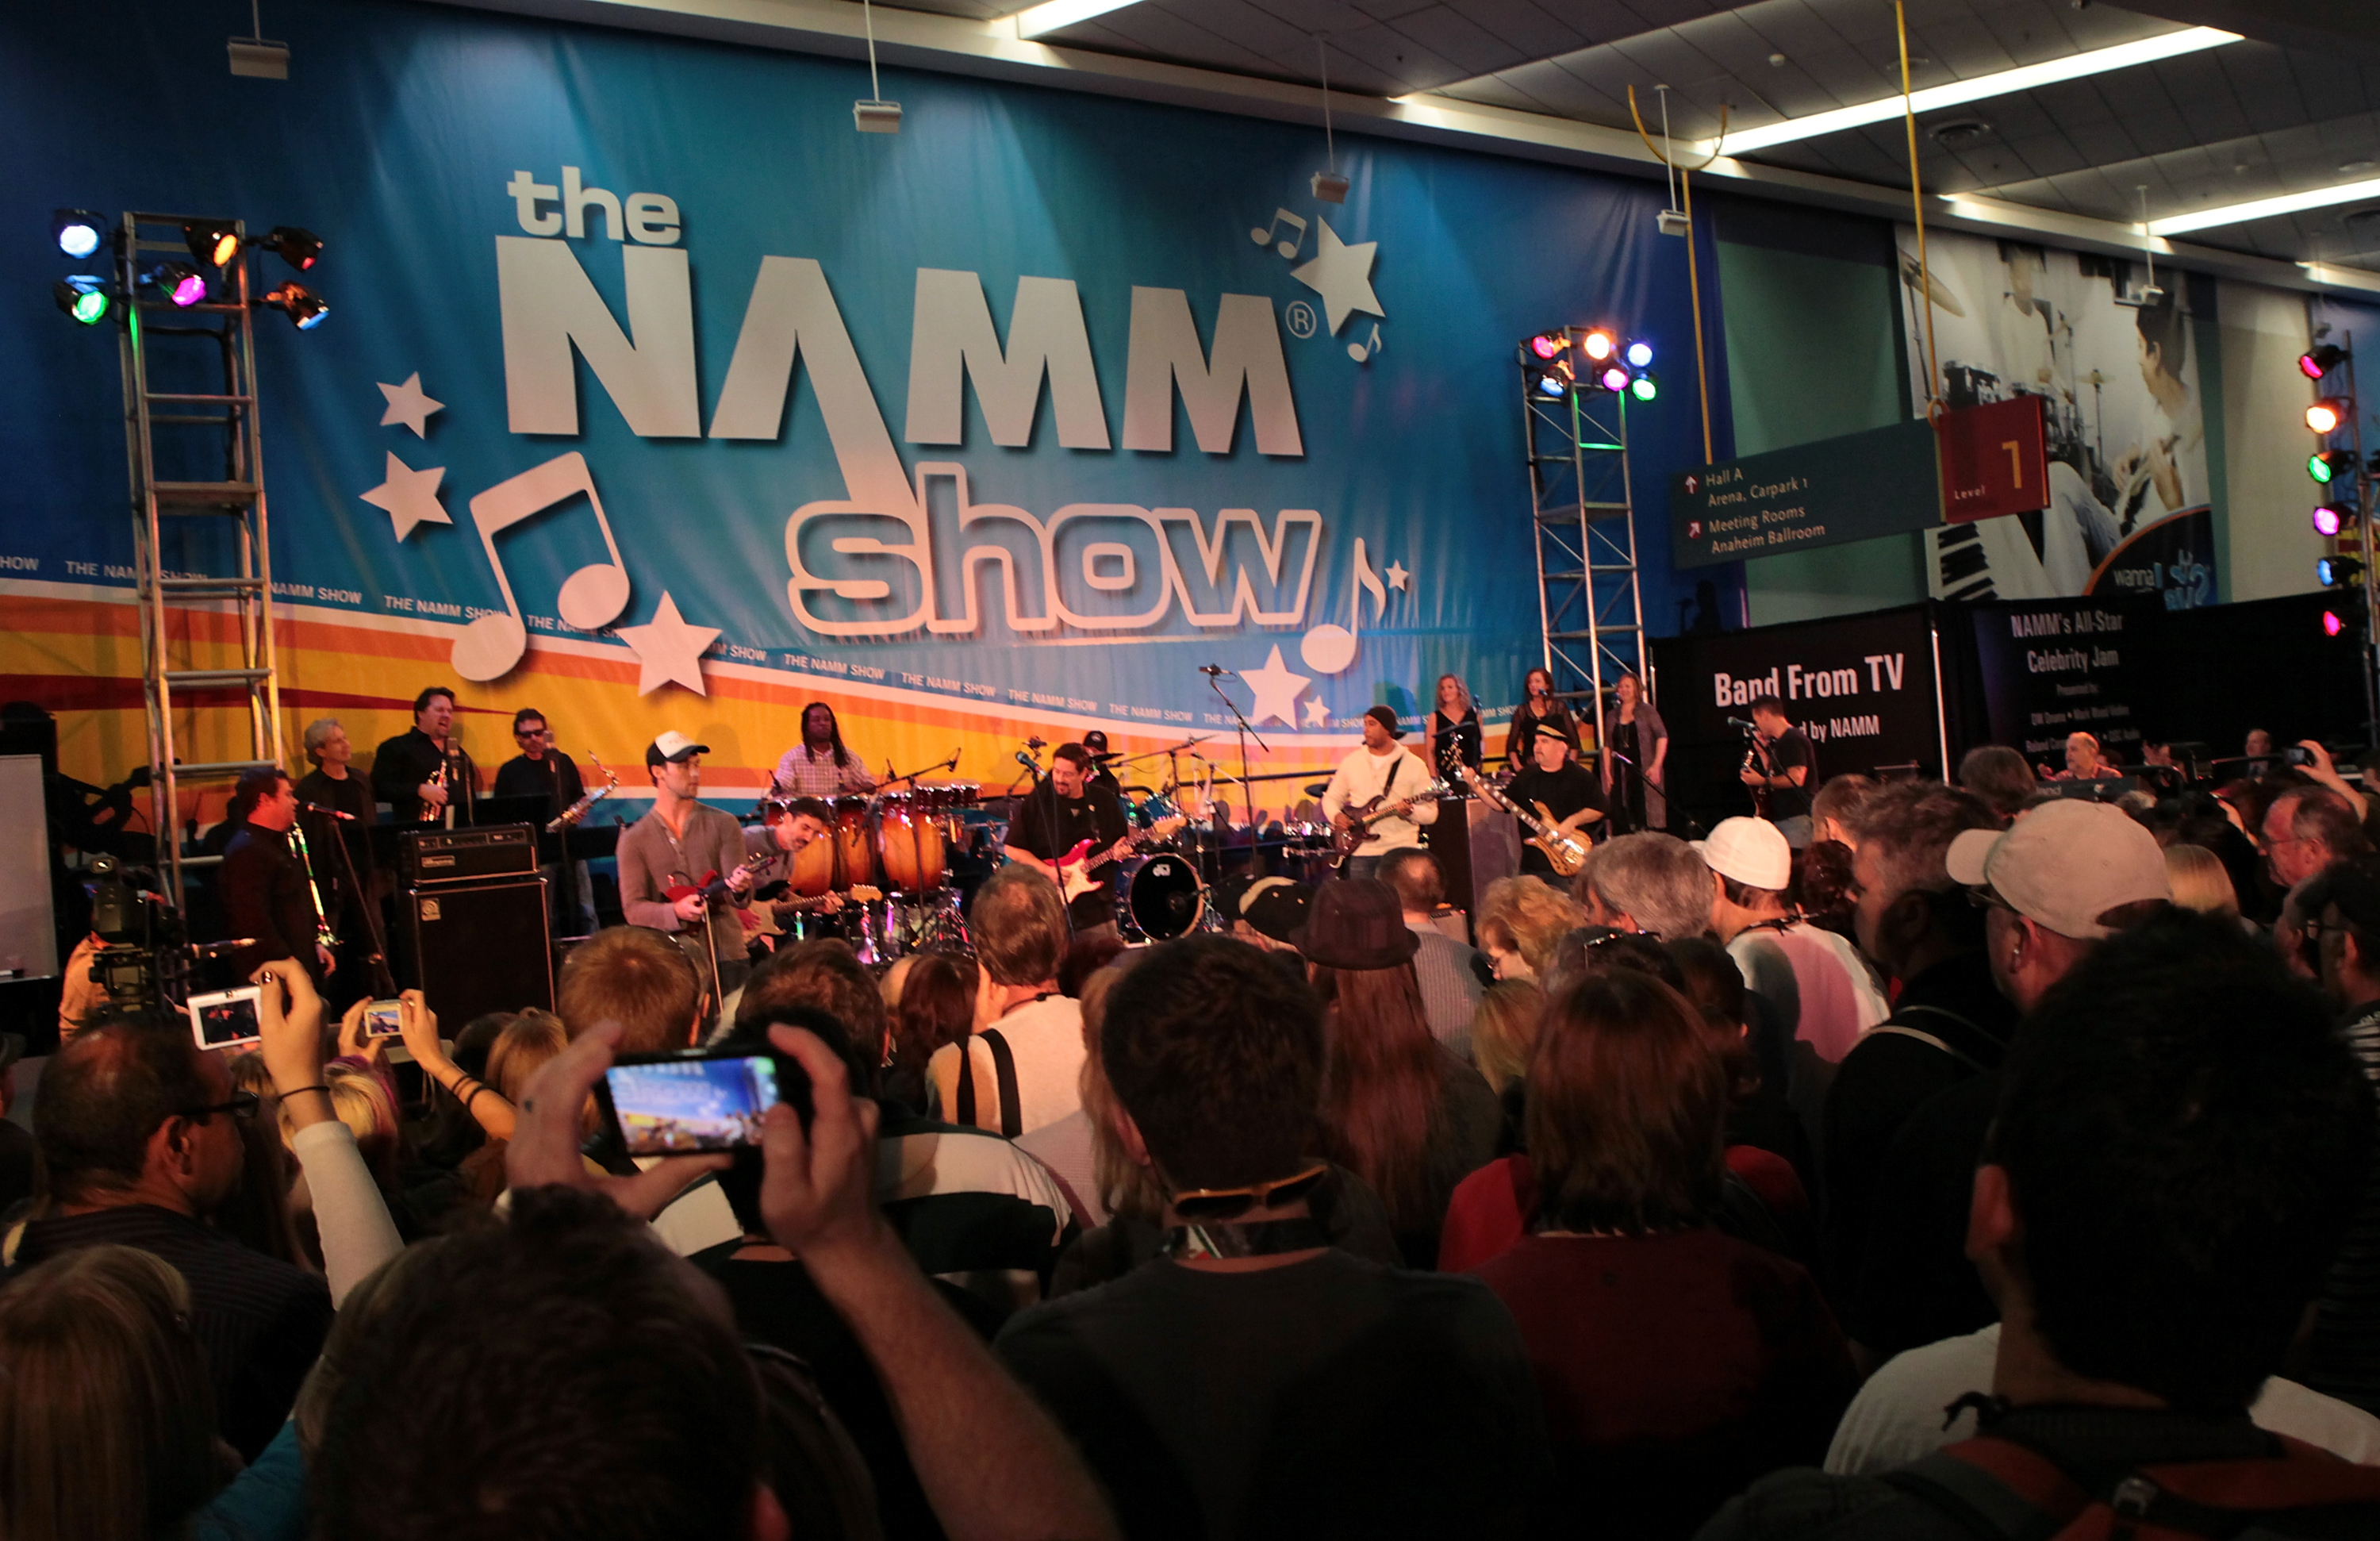 Trade Show Booth With Tv : Band from tv to headline the namm show s celebrity jam